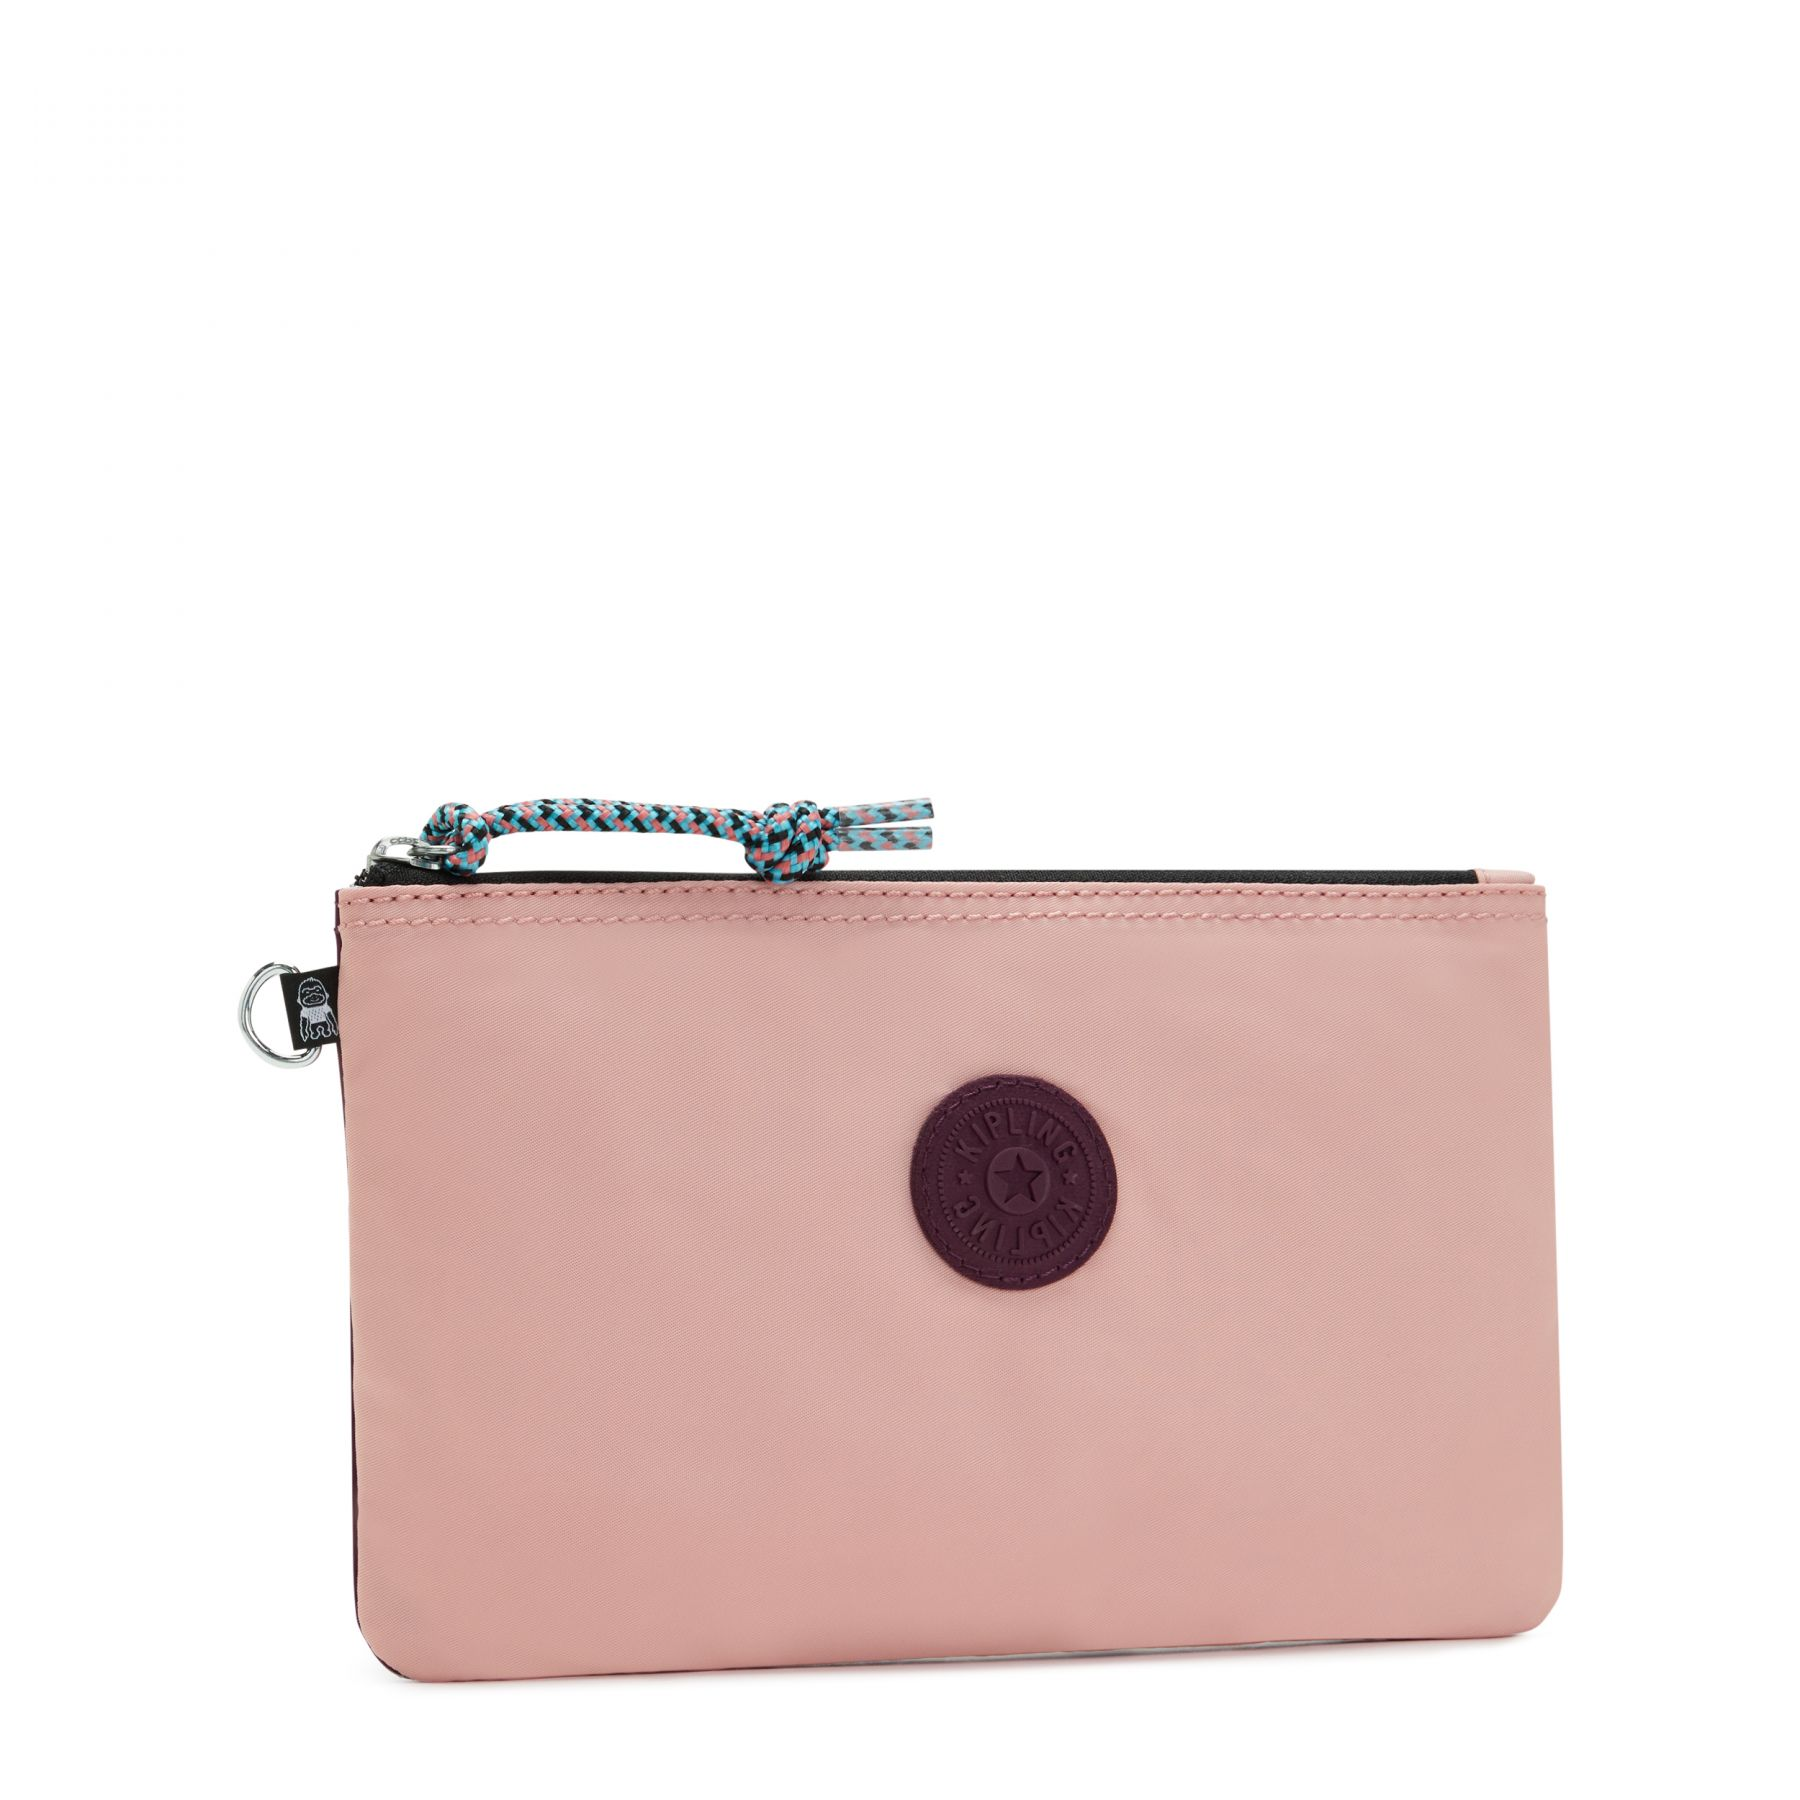 CASUAL POUCH ACCESSORIES by Kipling - view 4